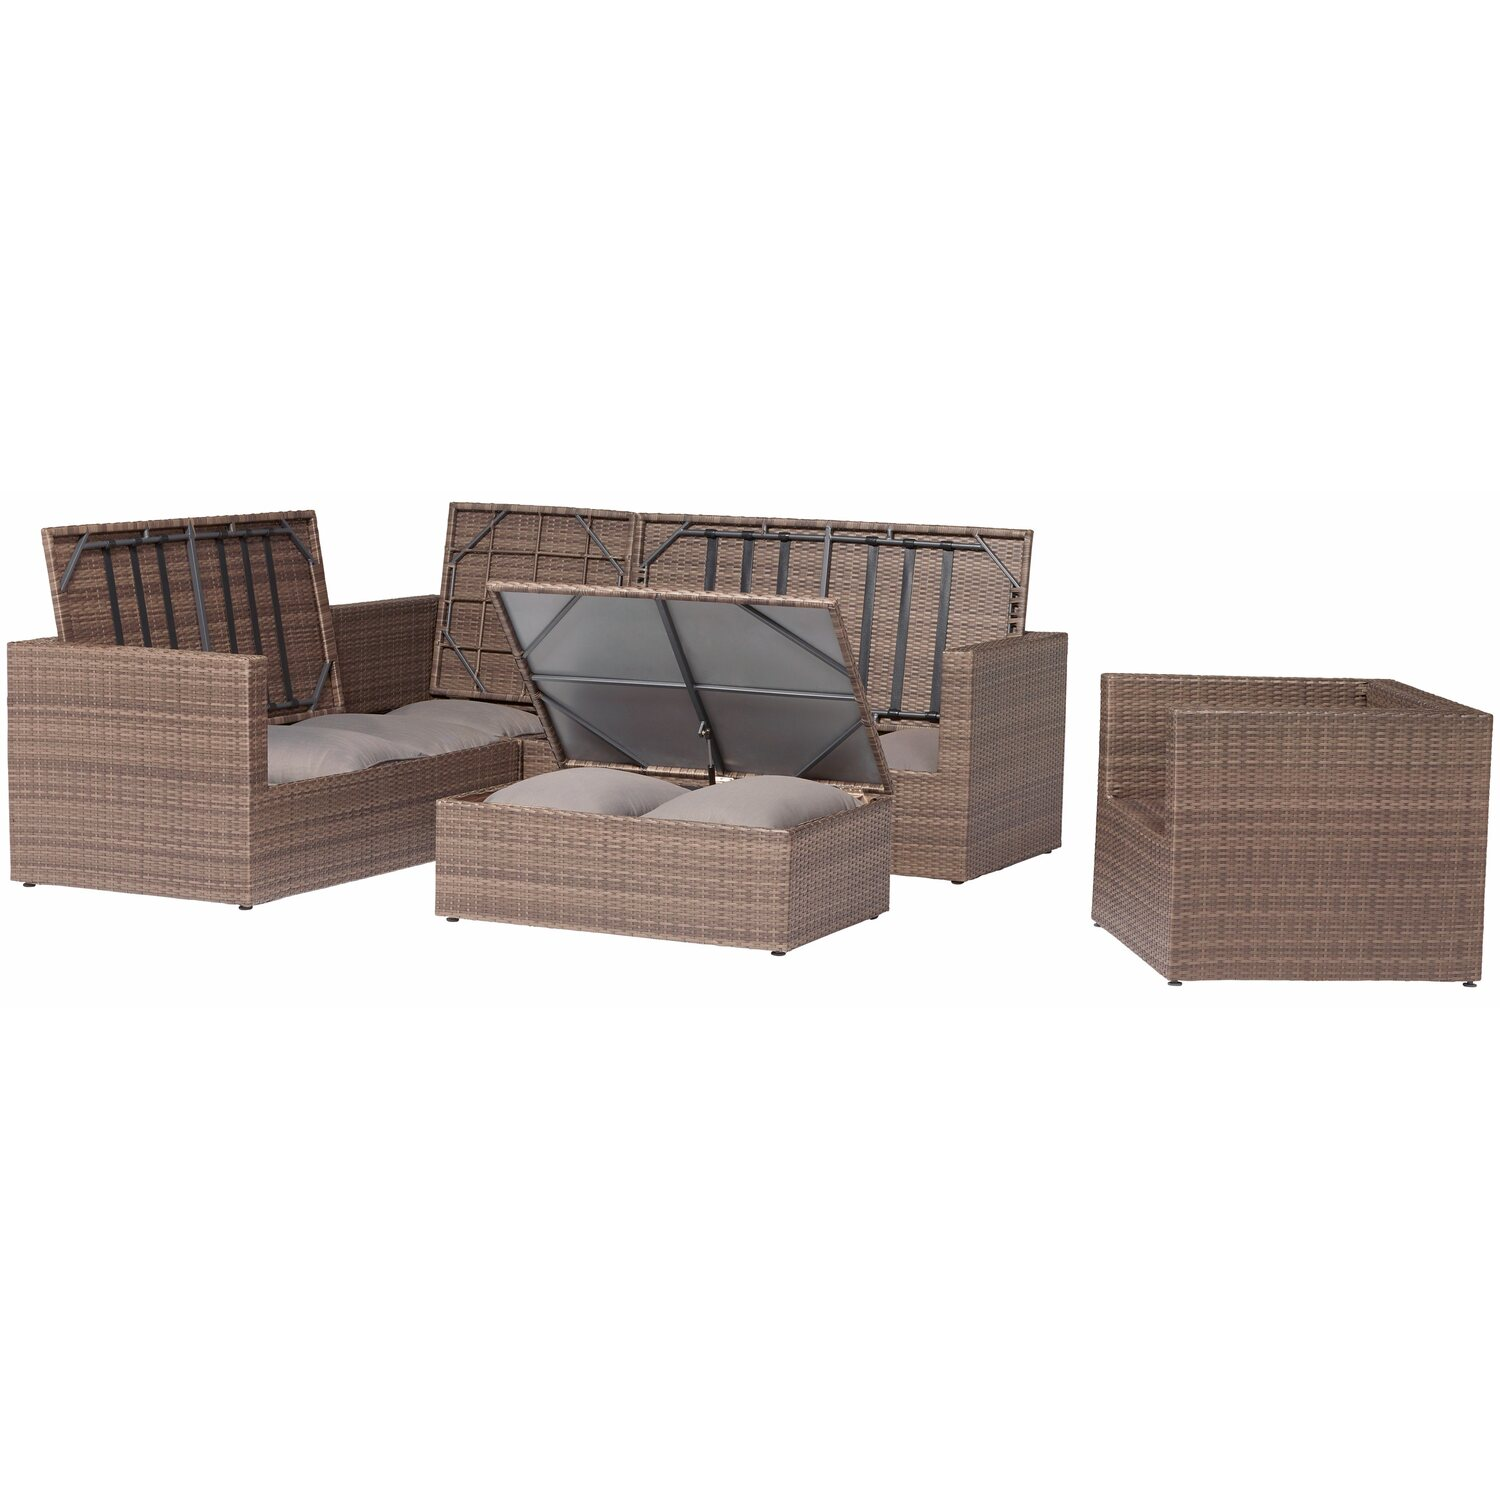 obi gartenm bel gruppe livingston 5 tlg kaufen bei obi. Black Bedroom Furniture Sets. Home Design Ideas